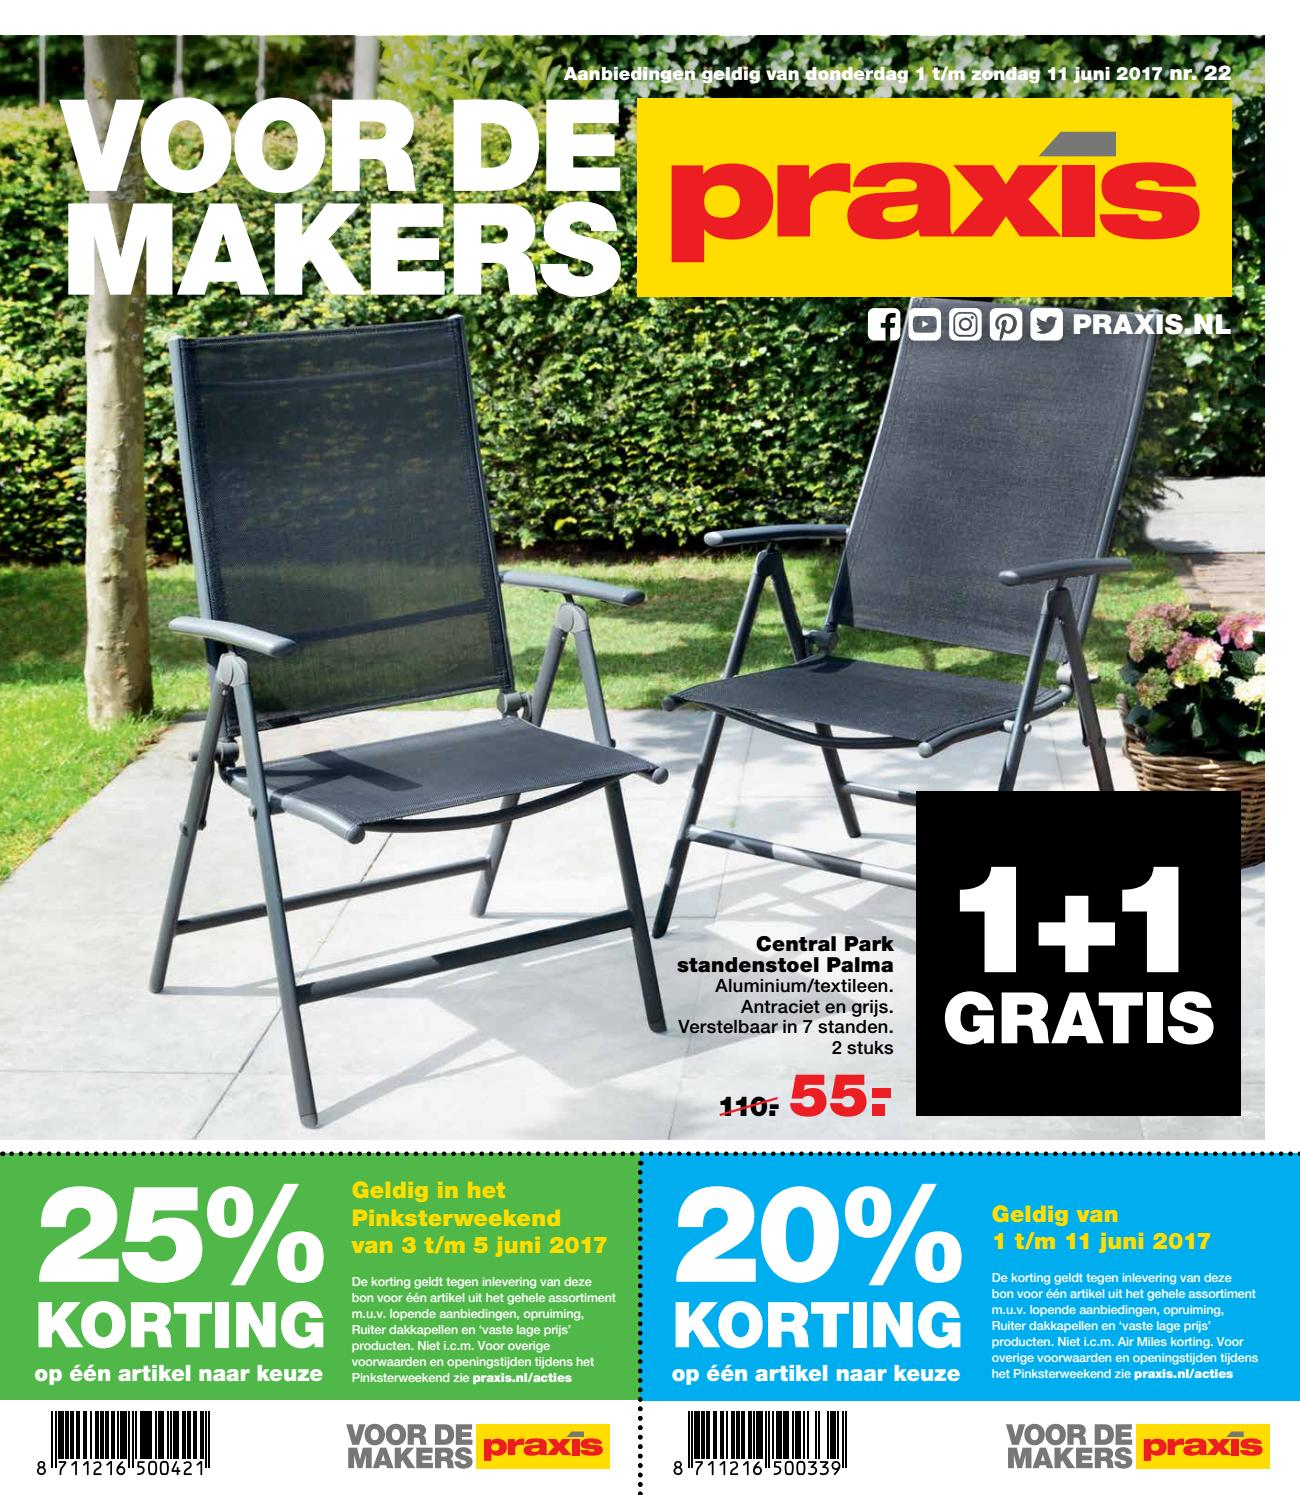 Flexa Verf Aanbieding Praxis Praxis Folder Folder Week 22 2017 By Publisher 81 Nl Issuu